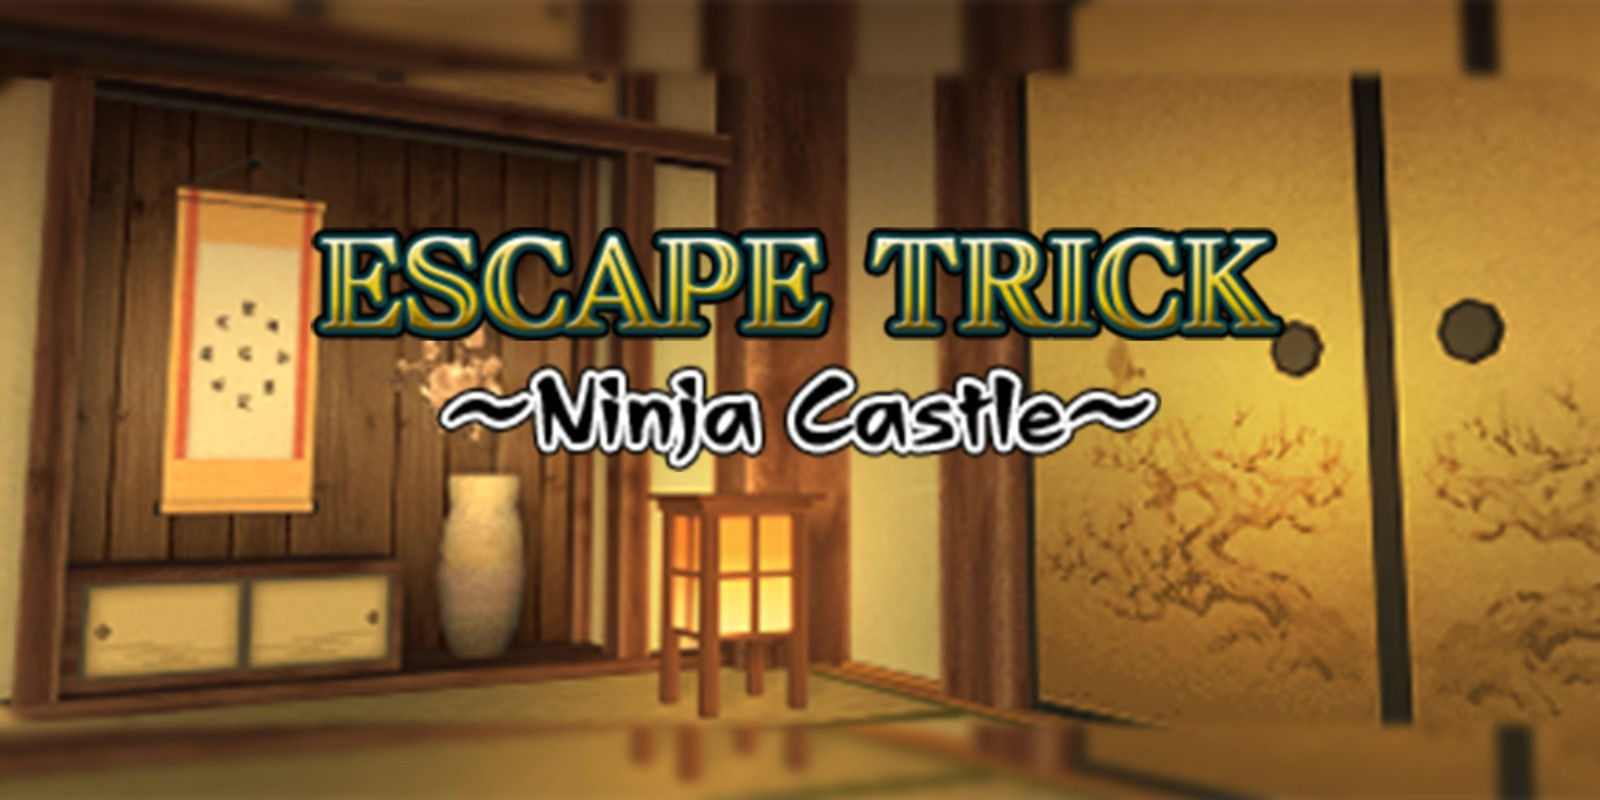 GO Series: Escape Trick - Ninja Castle